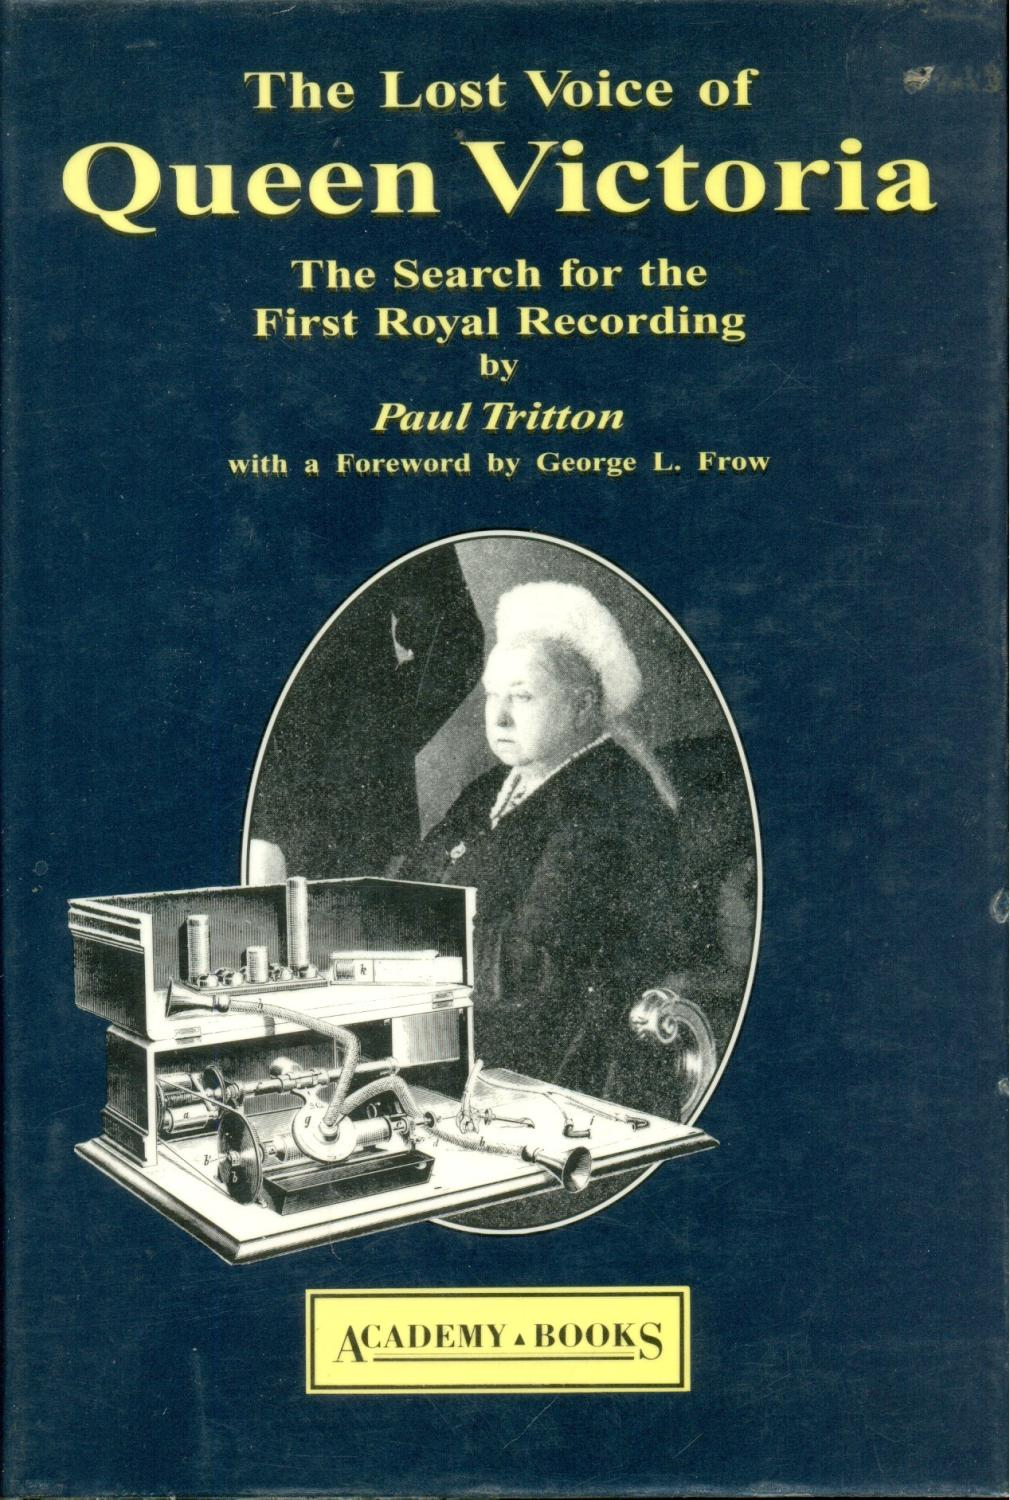 THE LOST VOICE OF QUEEN VICTORIA; THE SEARCH FOR THE FIRST ROYAL RECORDING